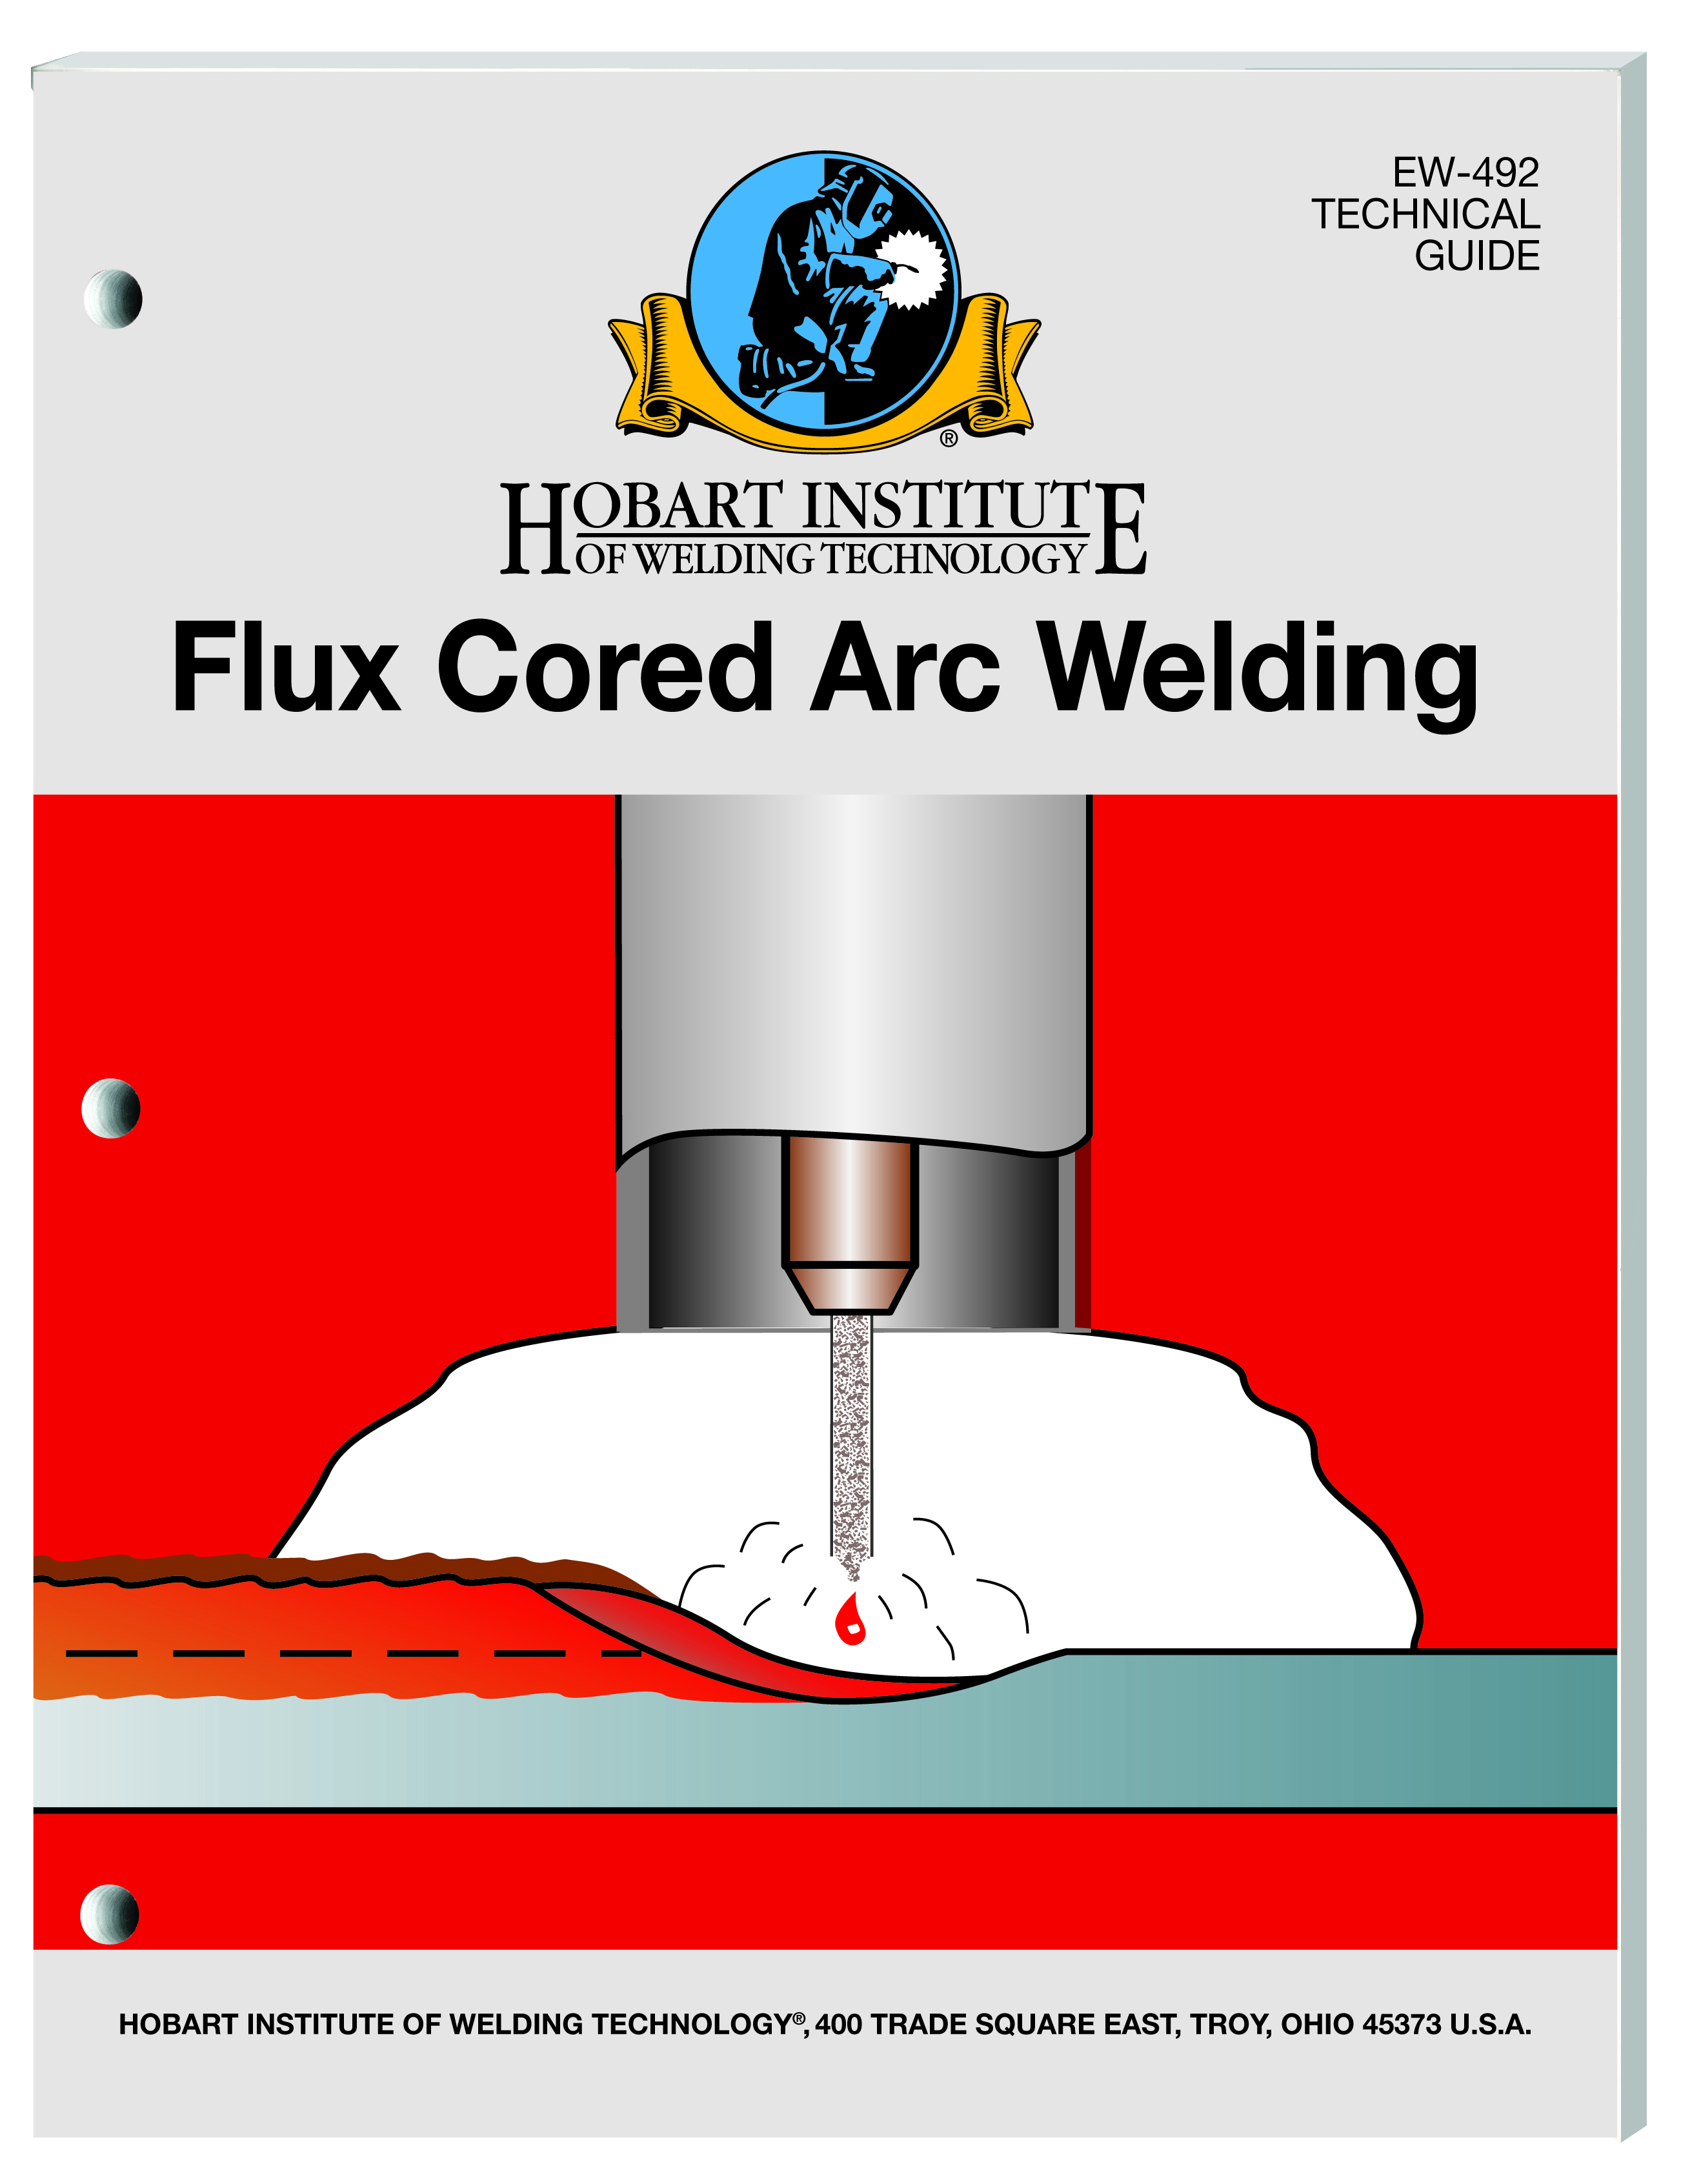 Flux cored arc welding hobart institute of welding technology flux cored arc welding malvernweather Image collections